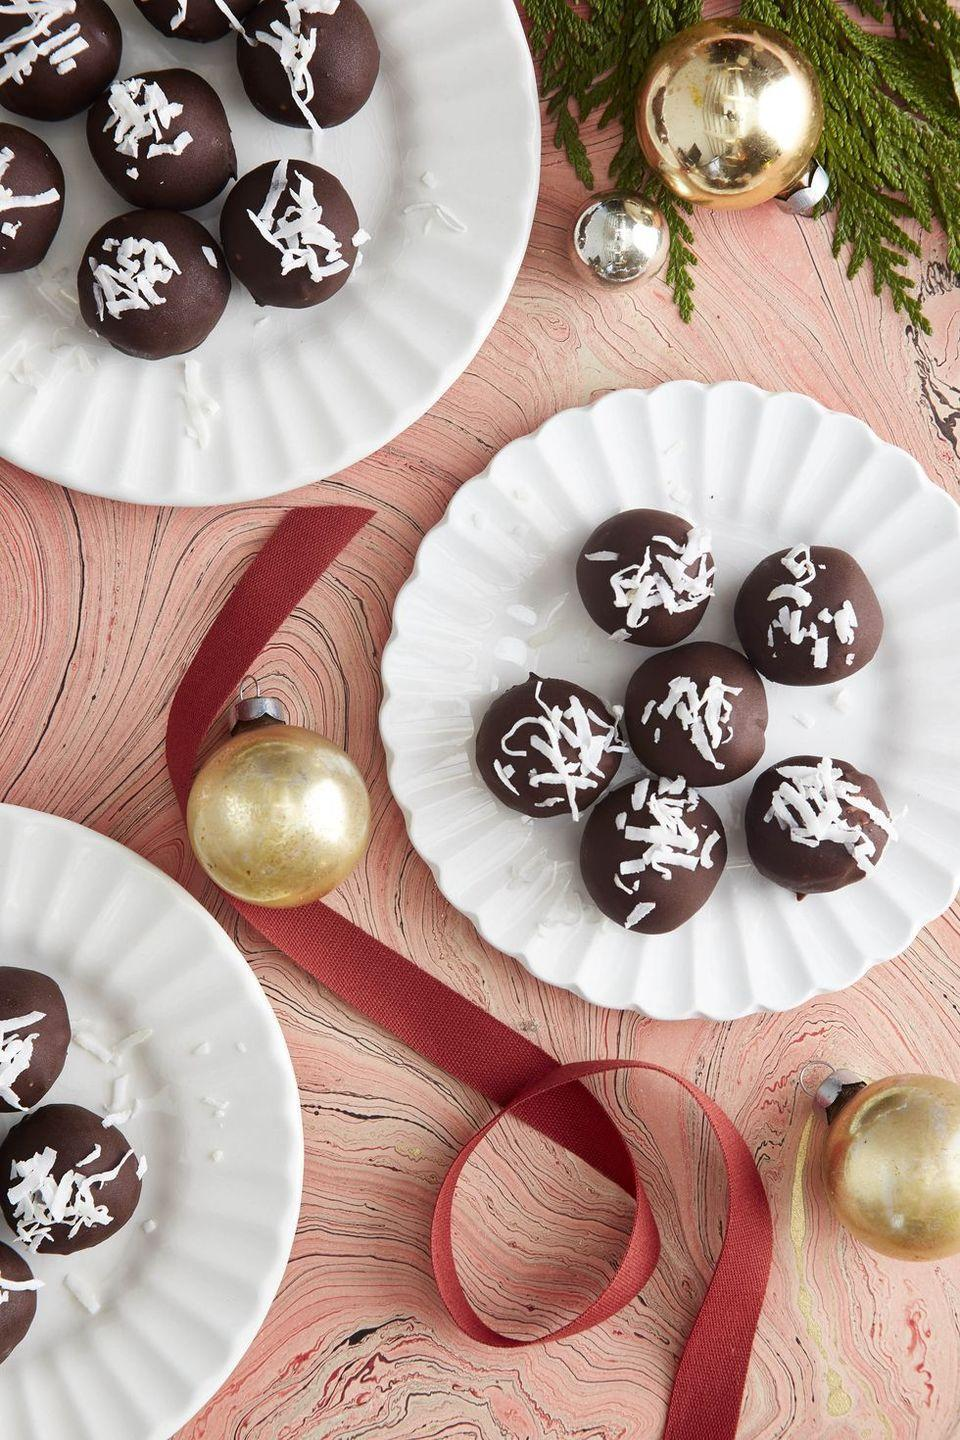 """<p>Who can say no to truffles? </p><p><strong><a href=""""https://www.countryliving.com/food-drinks/a34373834/chocolate-coconut-truffles-recipe/"""" rel=""""nofollow noopener"""" target=""""_blank"""" data-ylk=""""slk:Get the recipe"""" class=""""link rapid-noclick-resp"""">Get the recipe</a>.</strong></p>"""